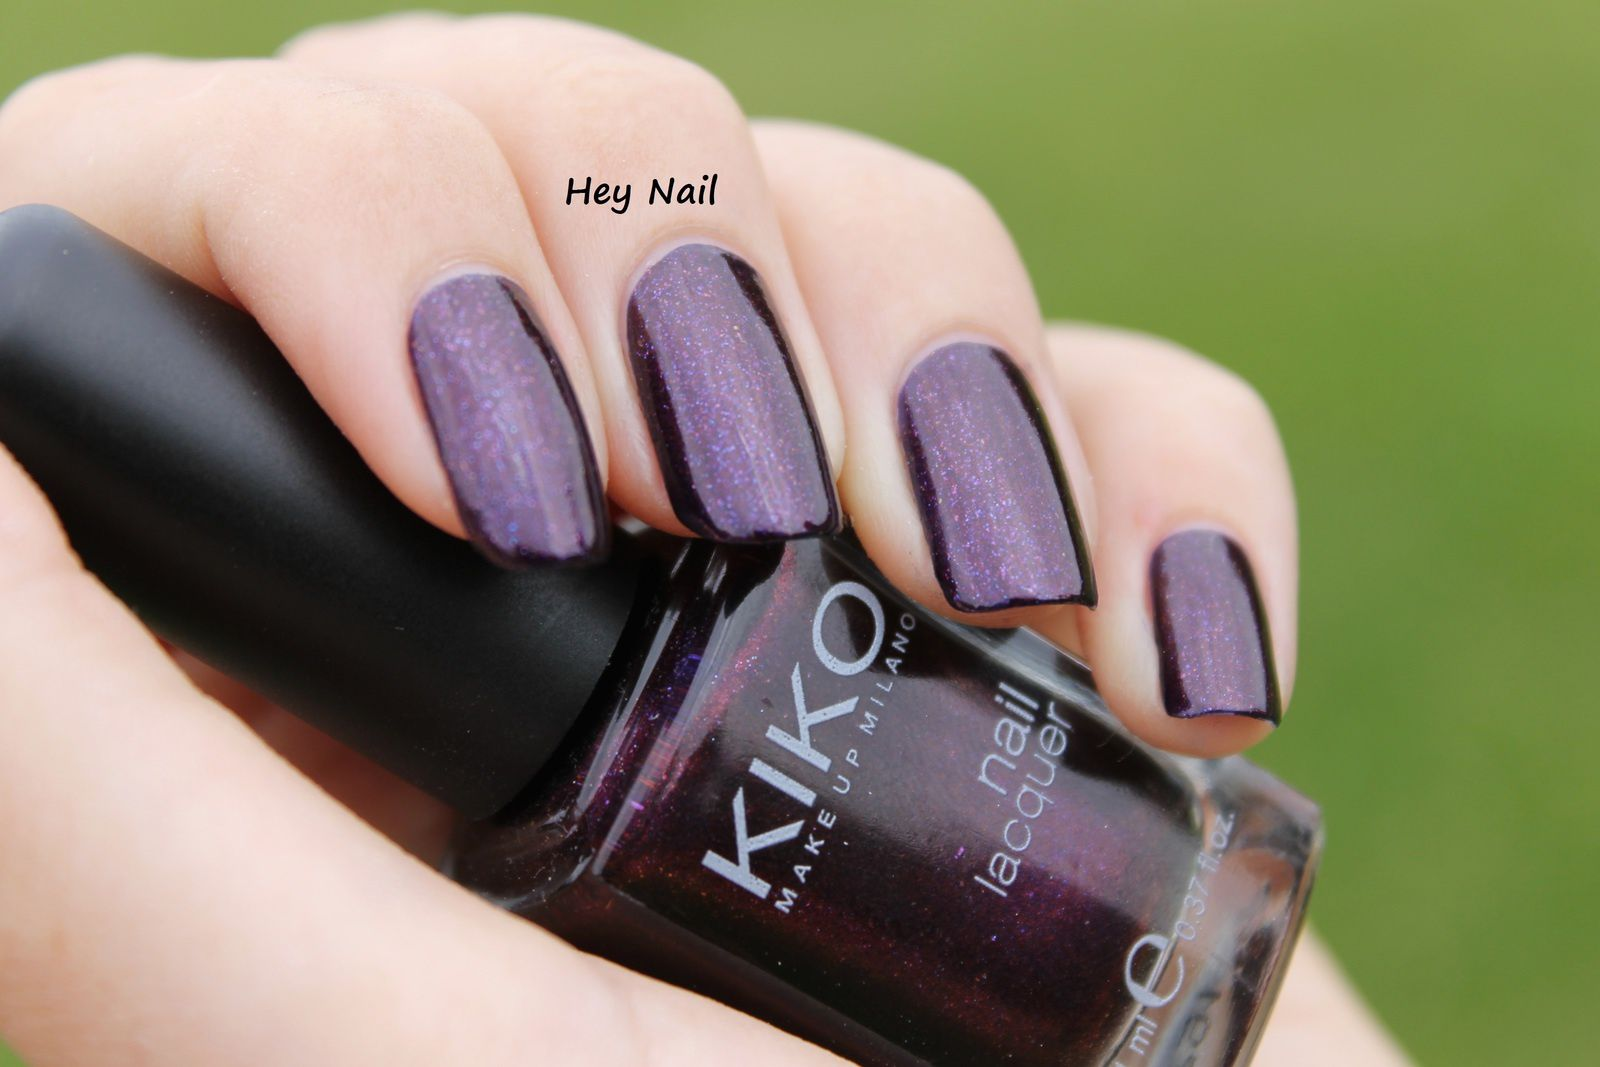 Kiko n°497 - Pearly Indian Violet + Concours ! (FERME)